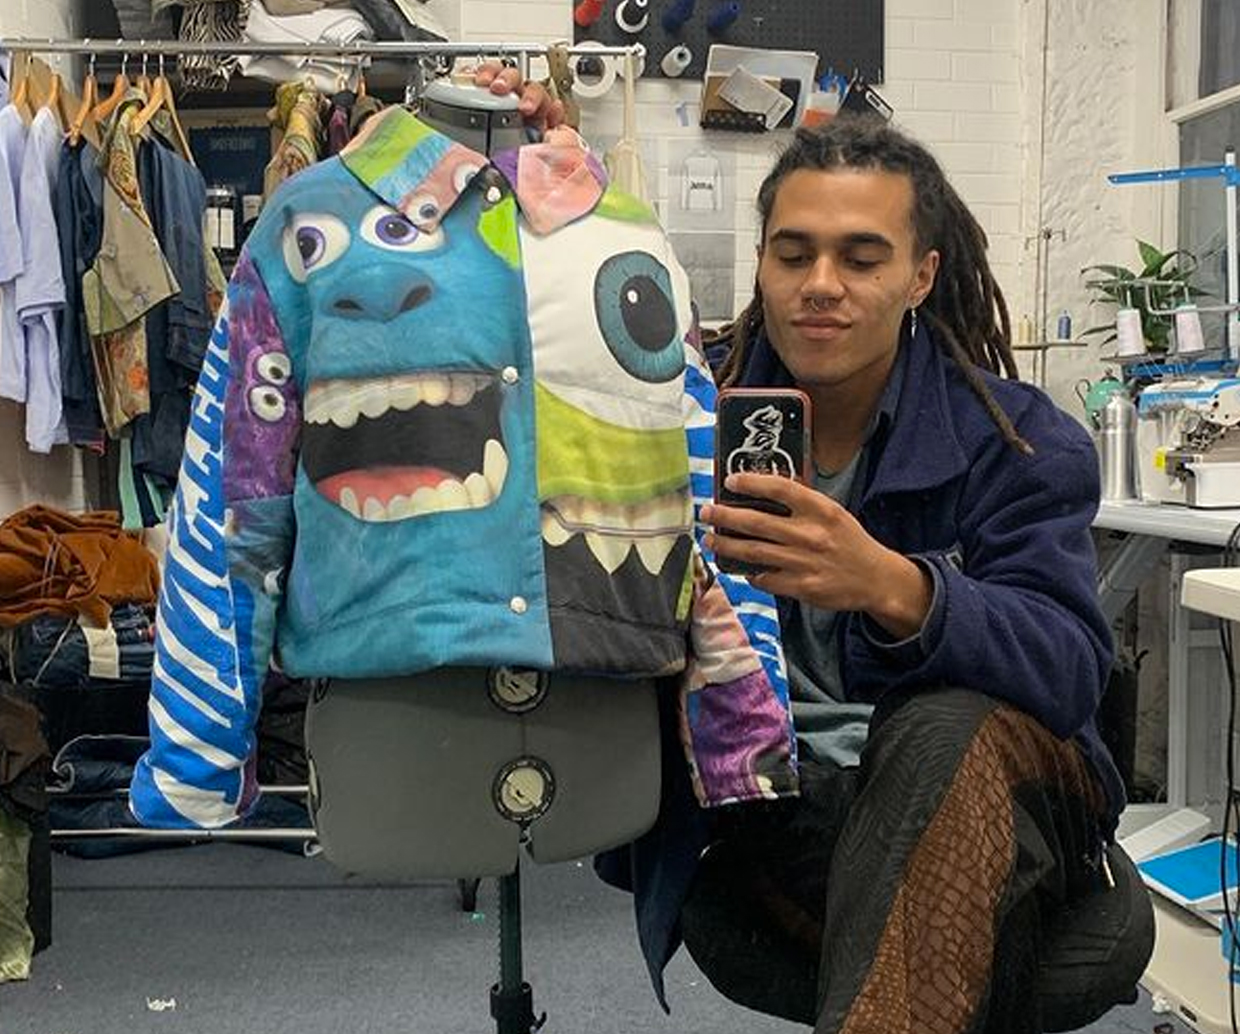 monster print on puffer jacket an dman posing with phone